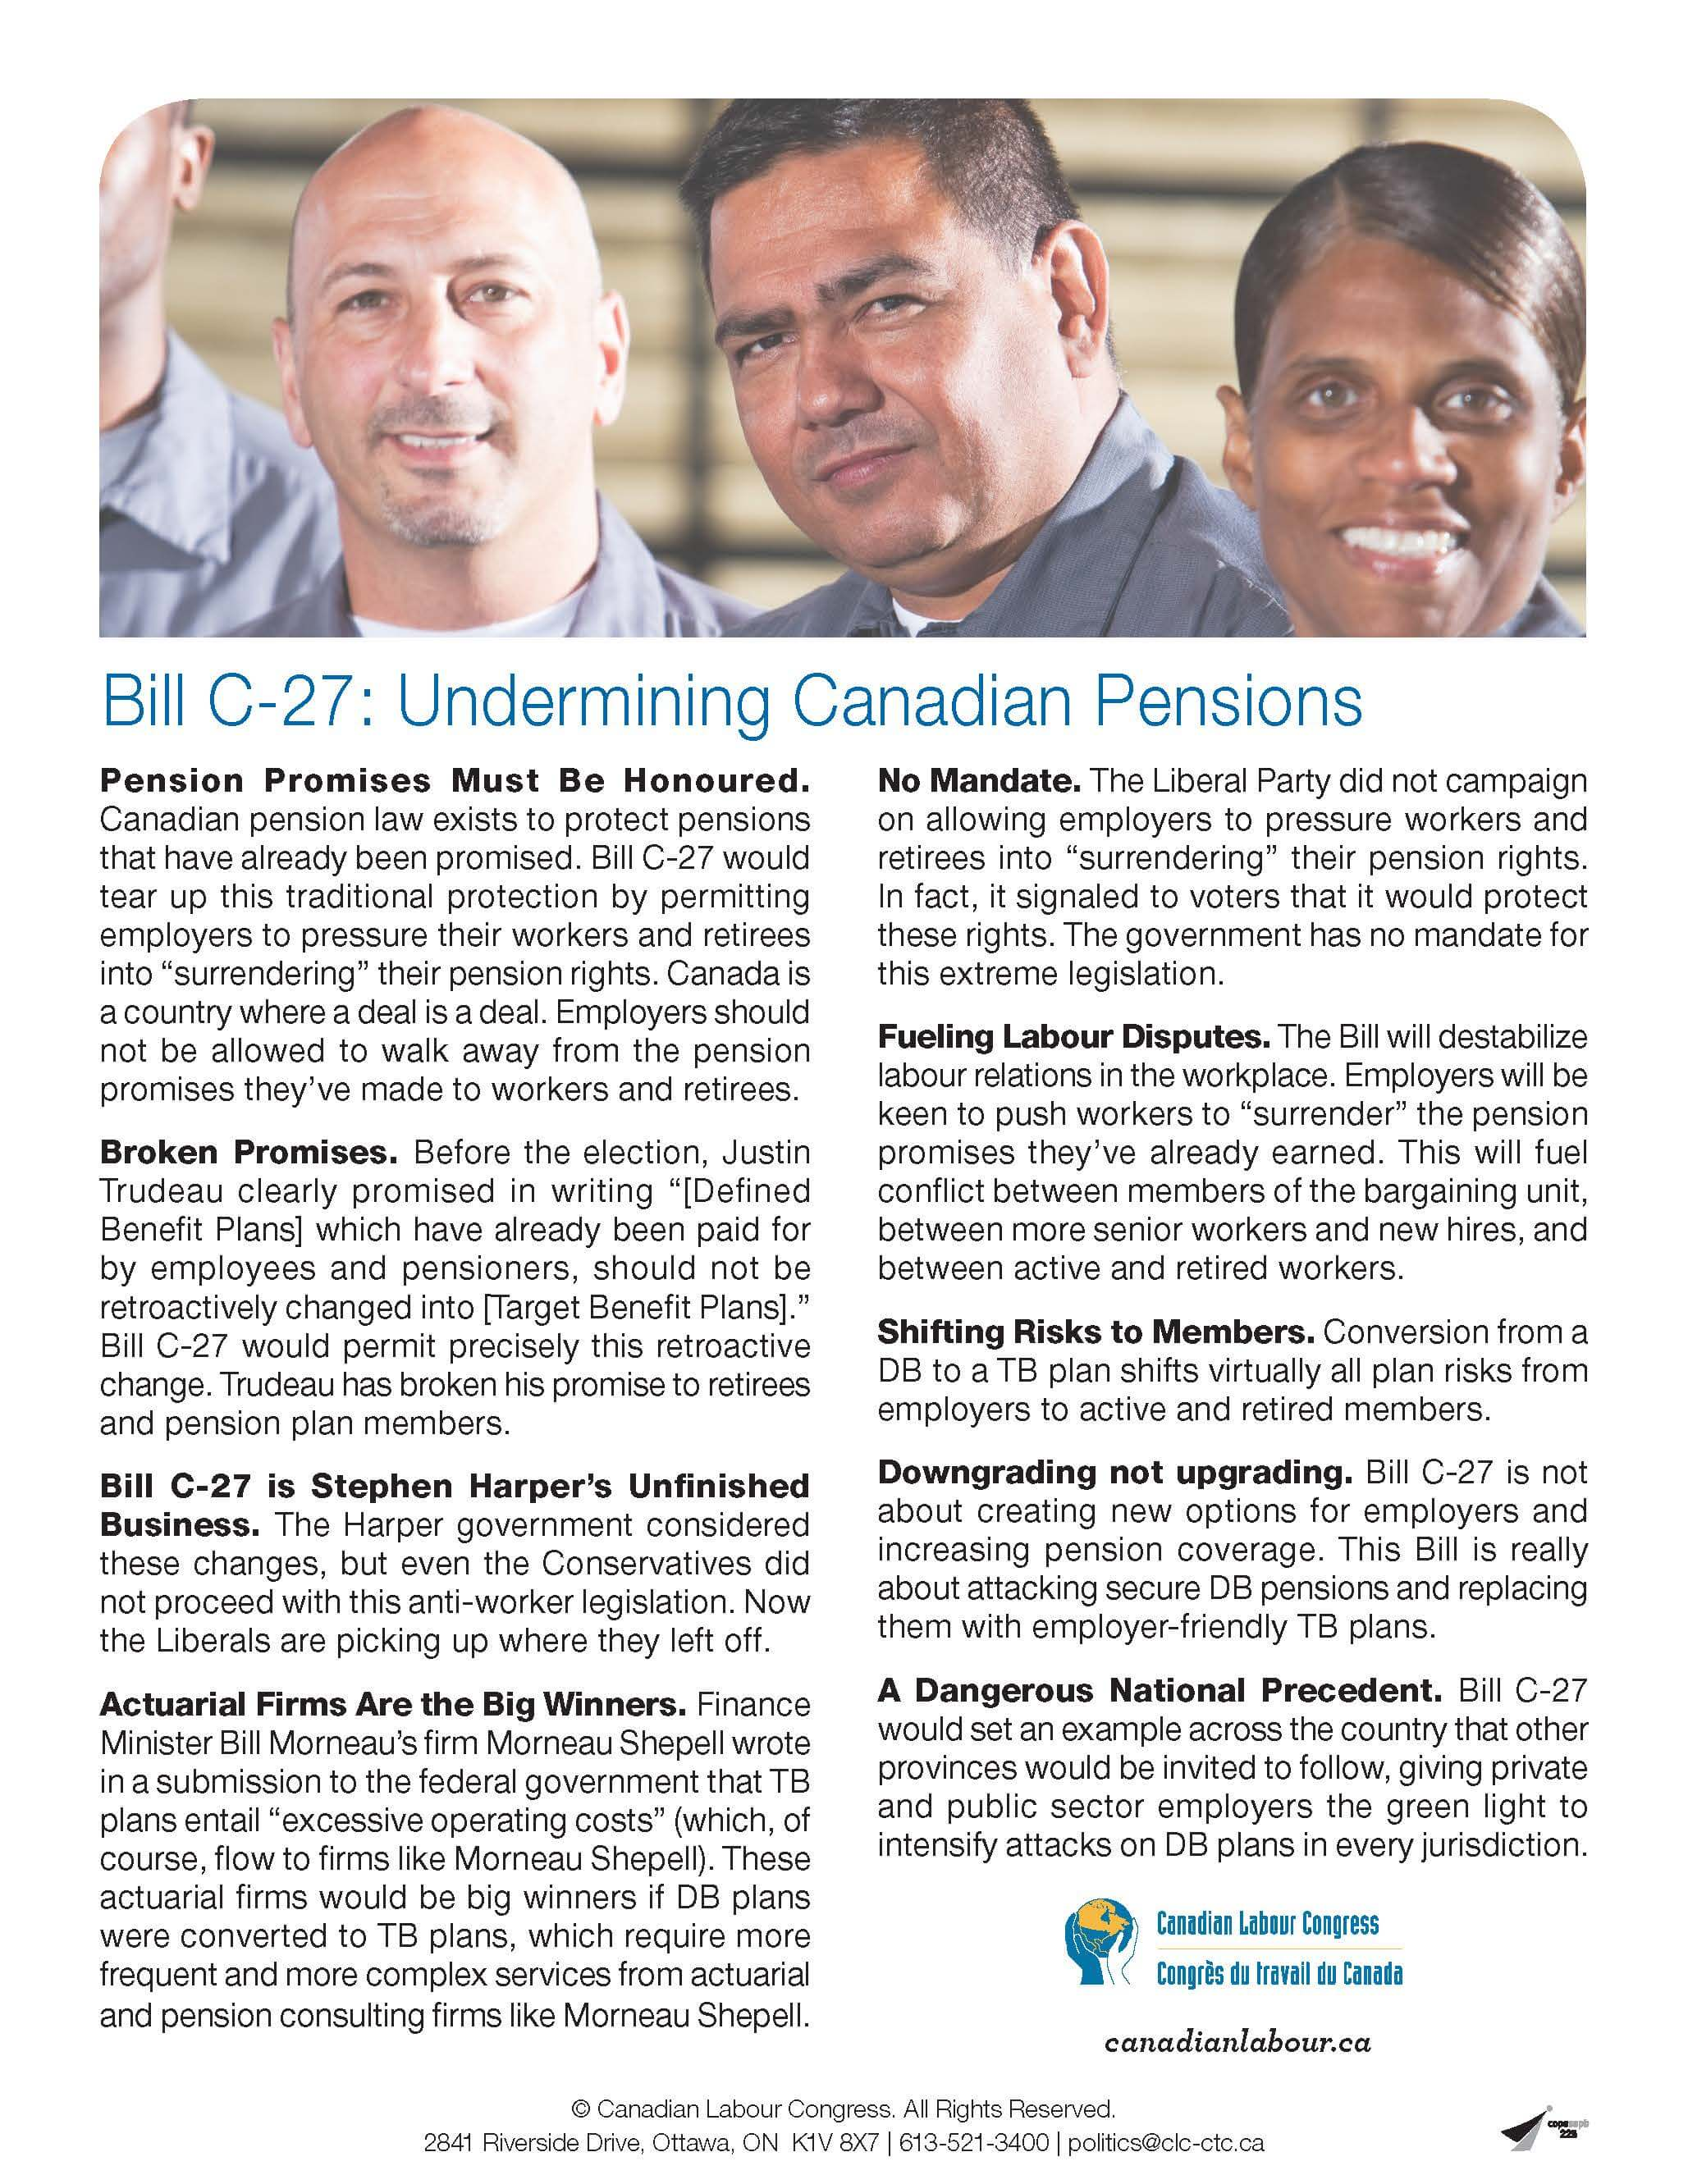 Bill C-27: Undermining Canadian Pensions (Fact Sheet)